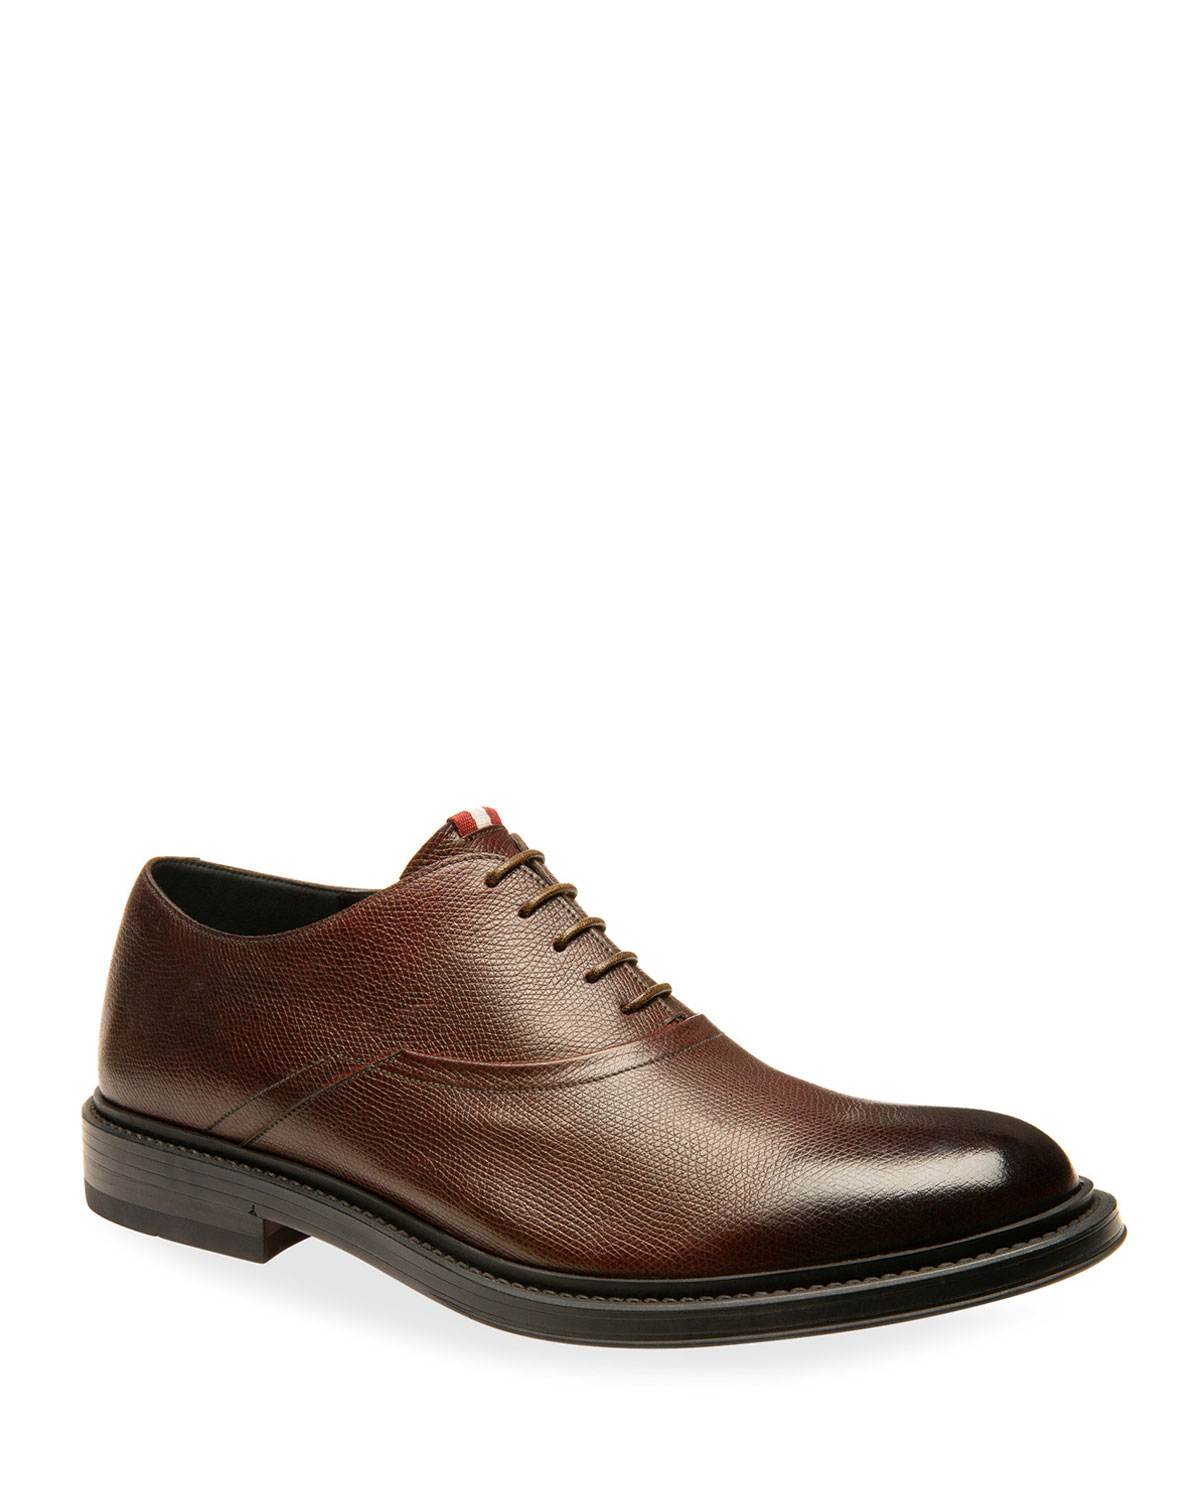 Bally Men's Nick Leather Oxford Shoes